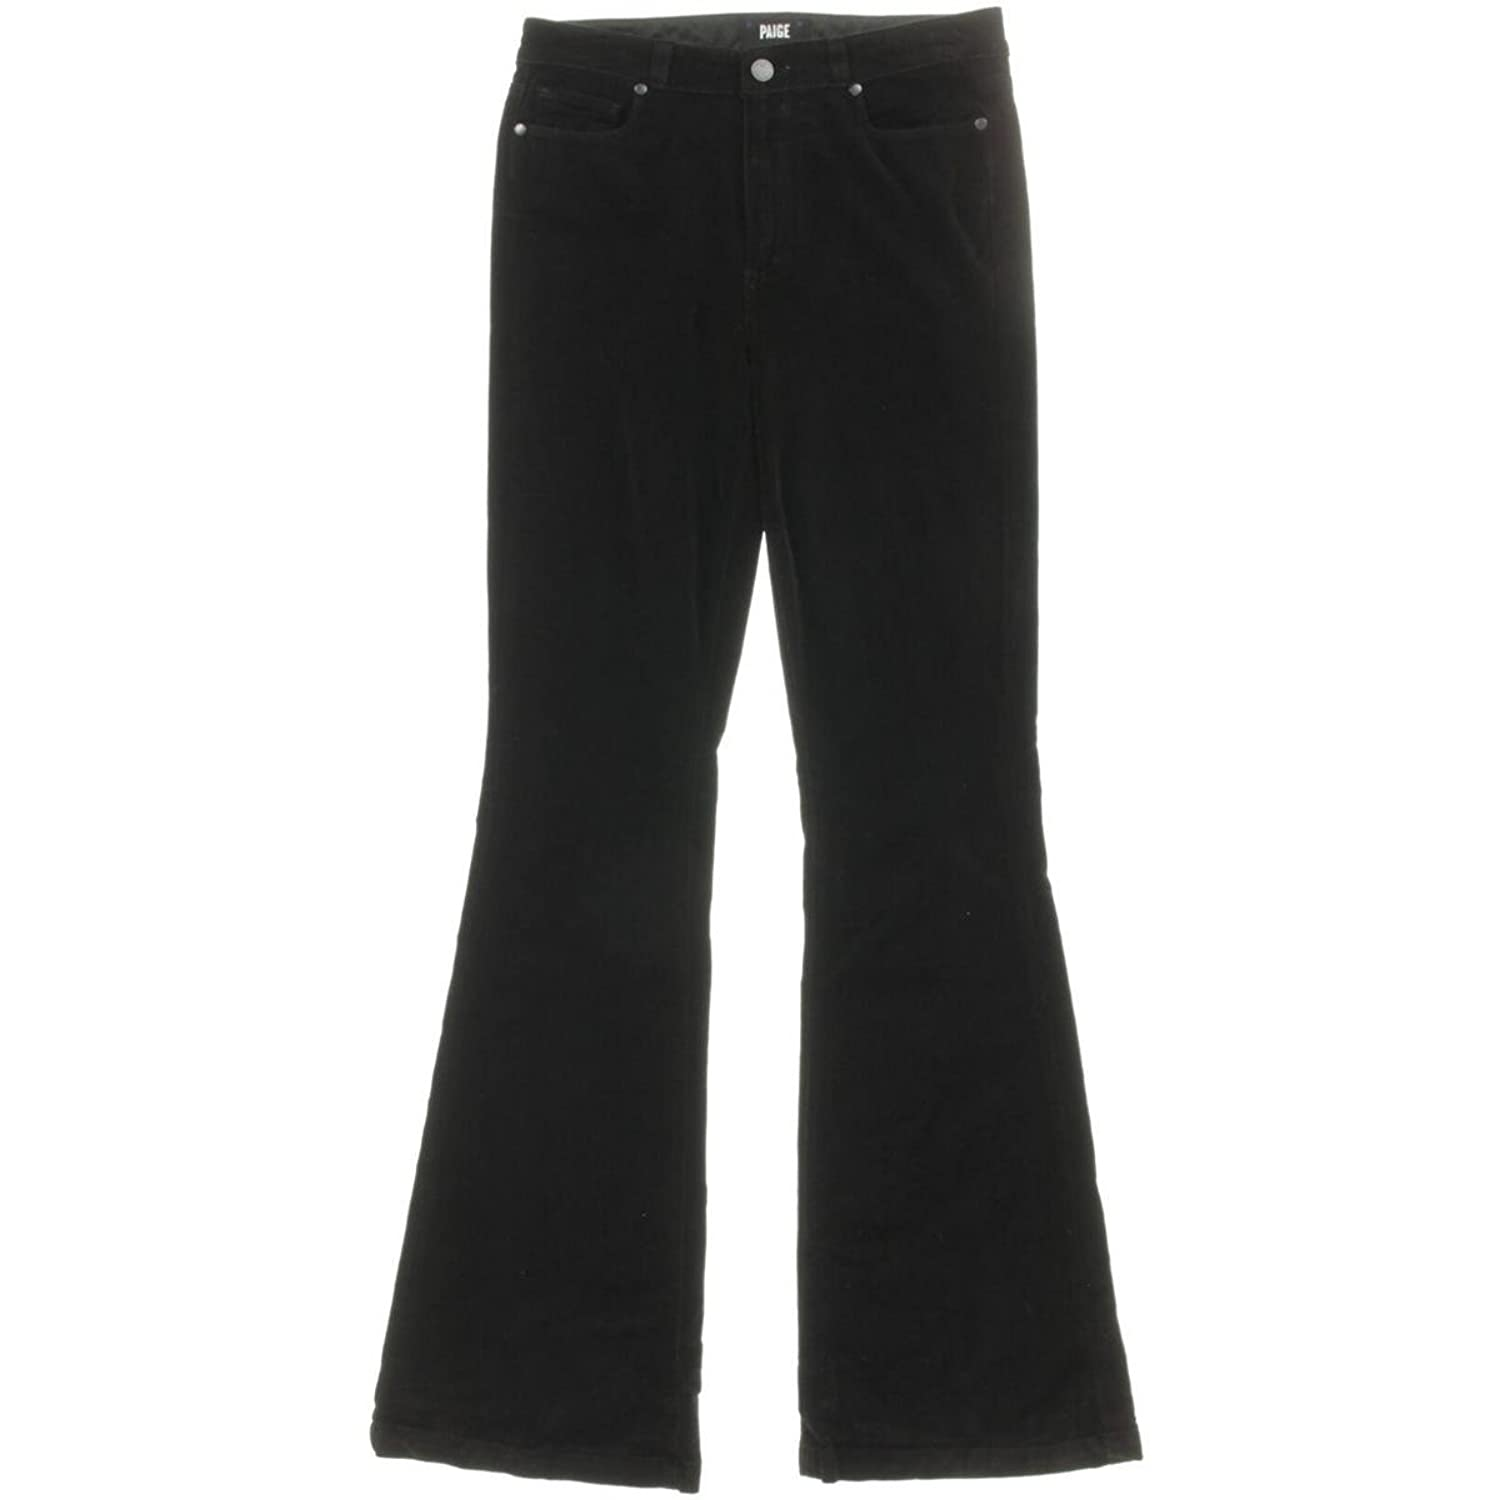 Paige Womens Bell Canyon Velvet High Rise Flare Jeans